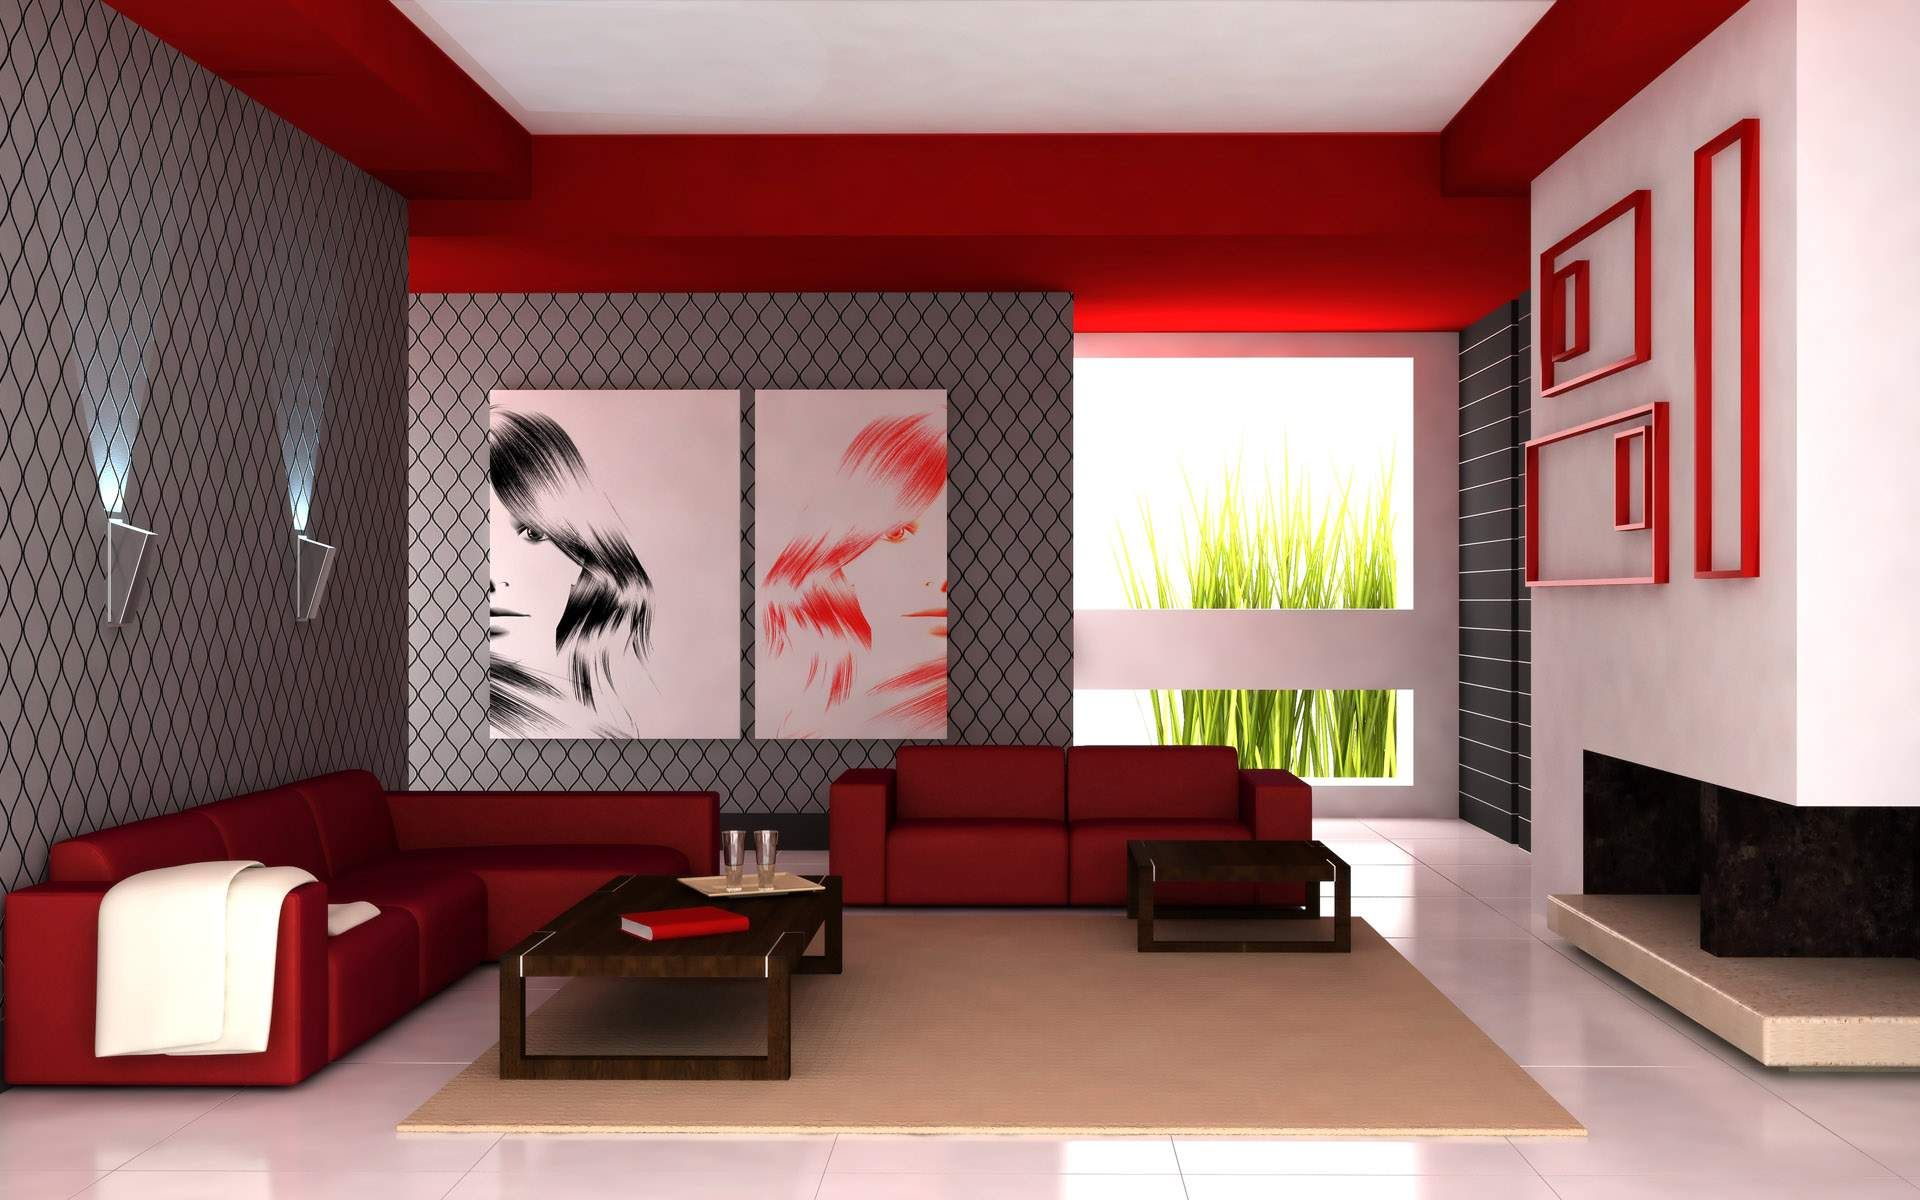 cool Living Room Interior With Flashy Red Color - Stylendesigns.com ...